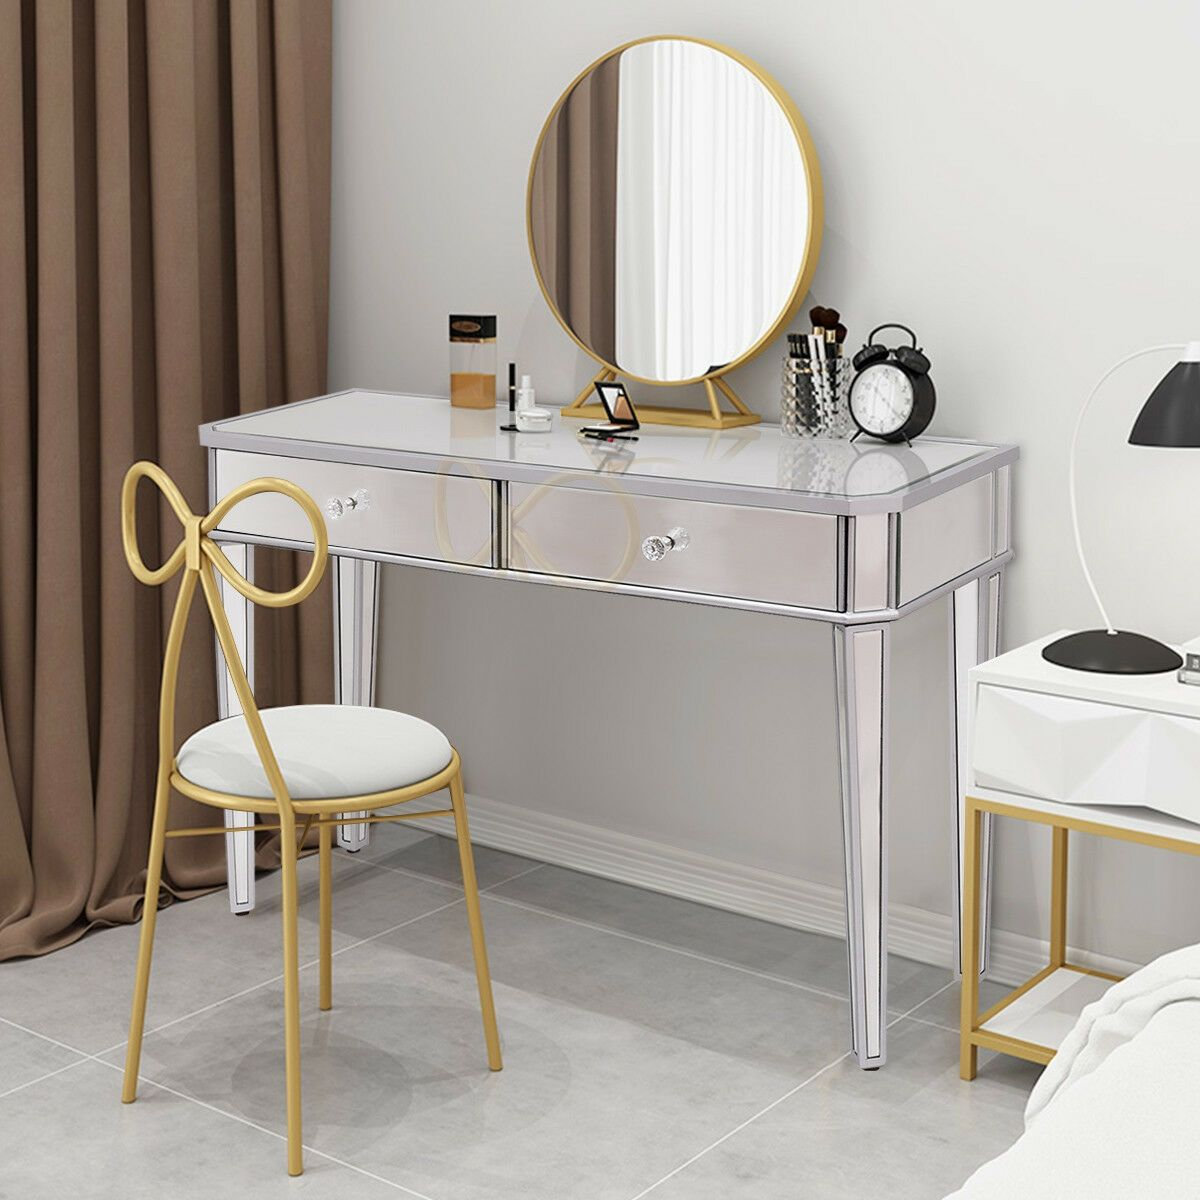 2 Drawers Mirrored Vanity Make Up Desk Console Glass Vanity Table Small Vanity Table Glass Vanity